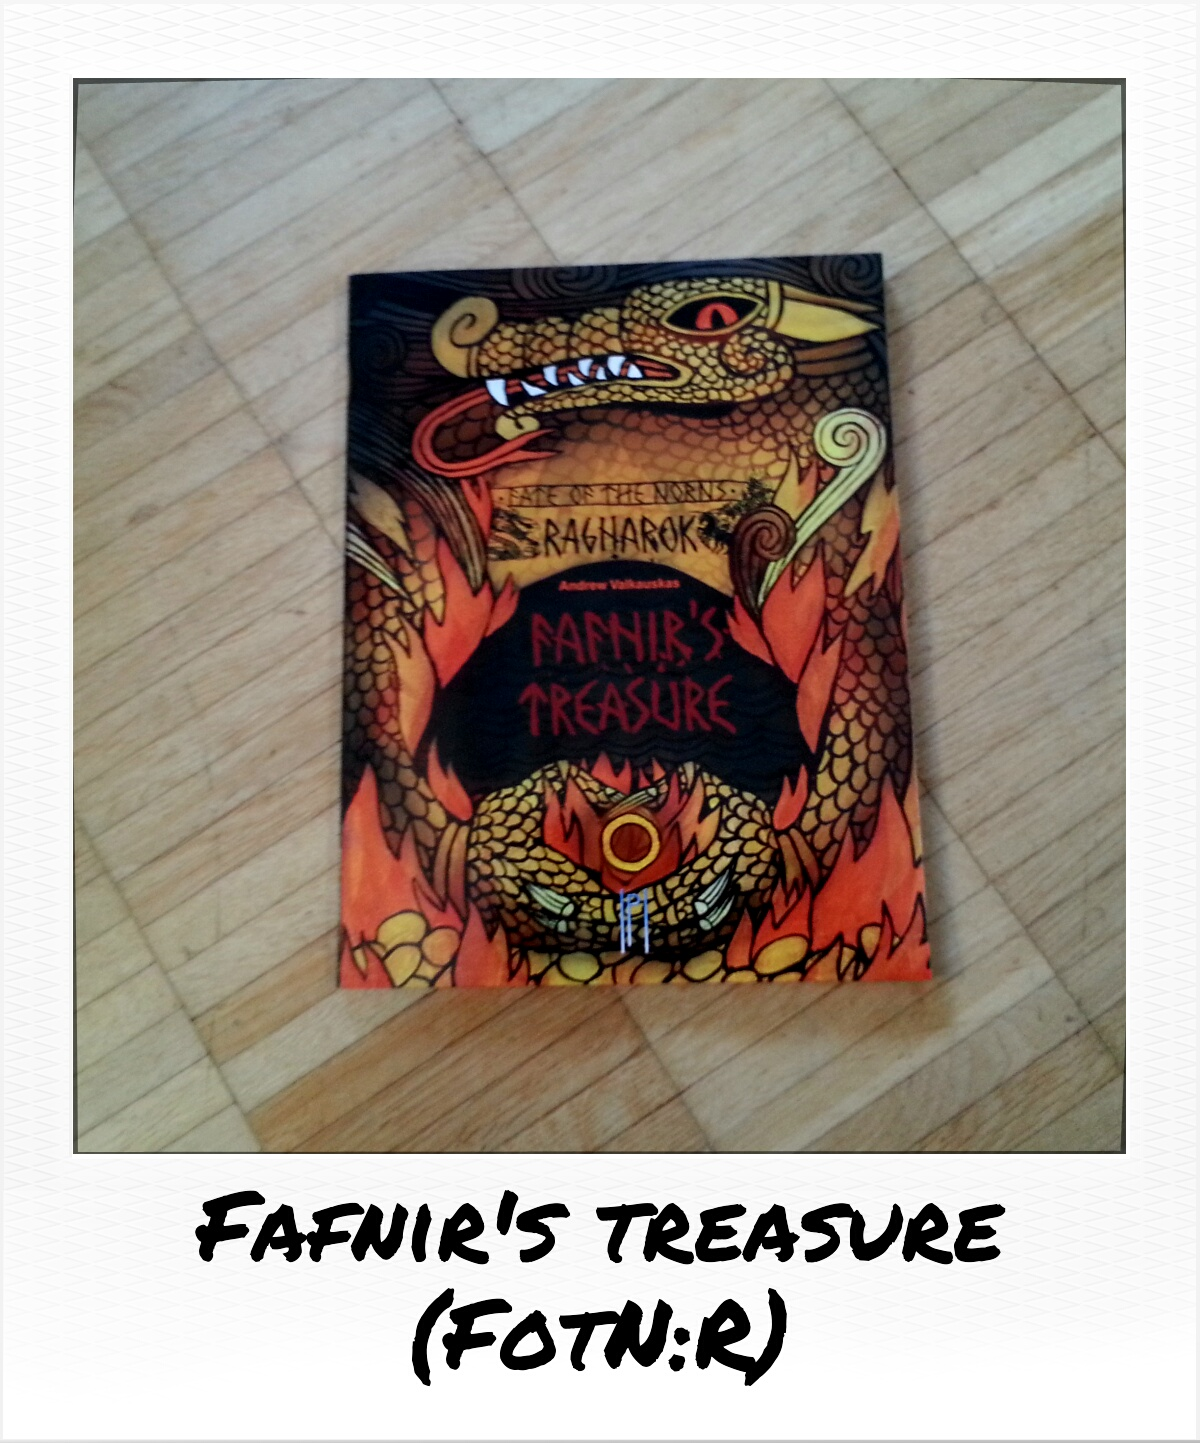 Fate of the Norns Ragnarok - Fafnirs Treasure: Runes (Helena Rosova, Pendelhaven)